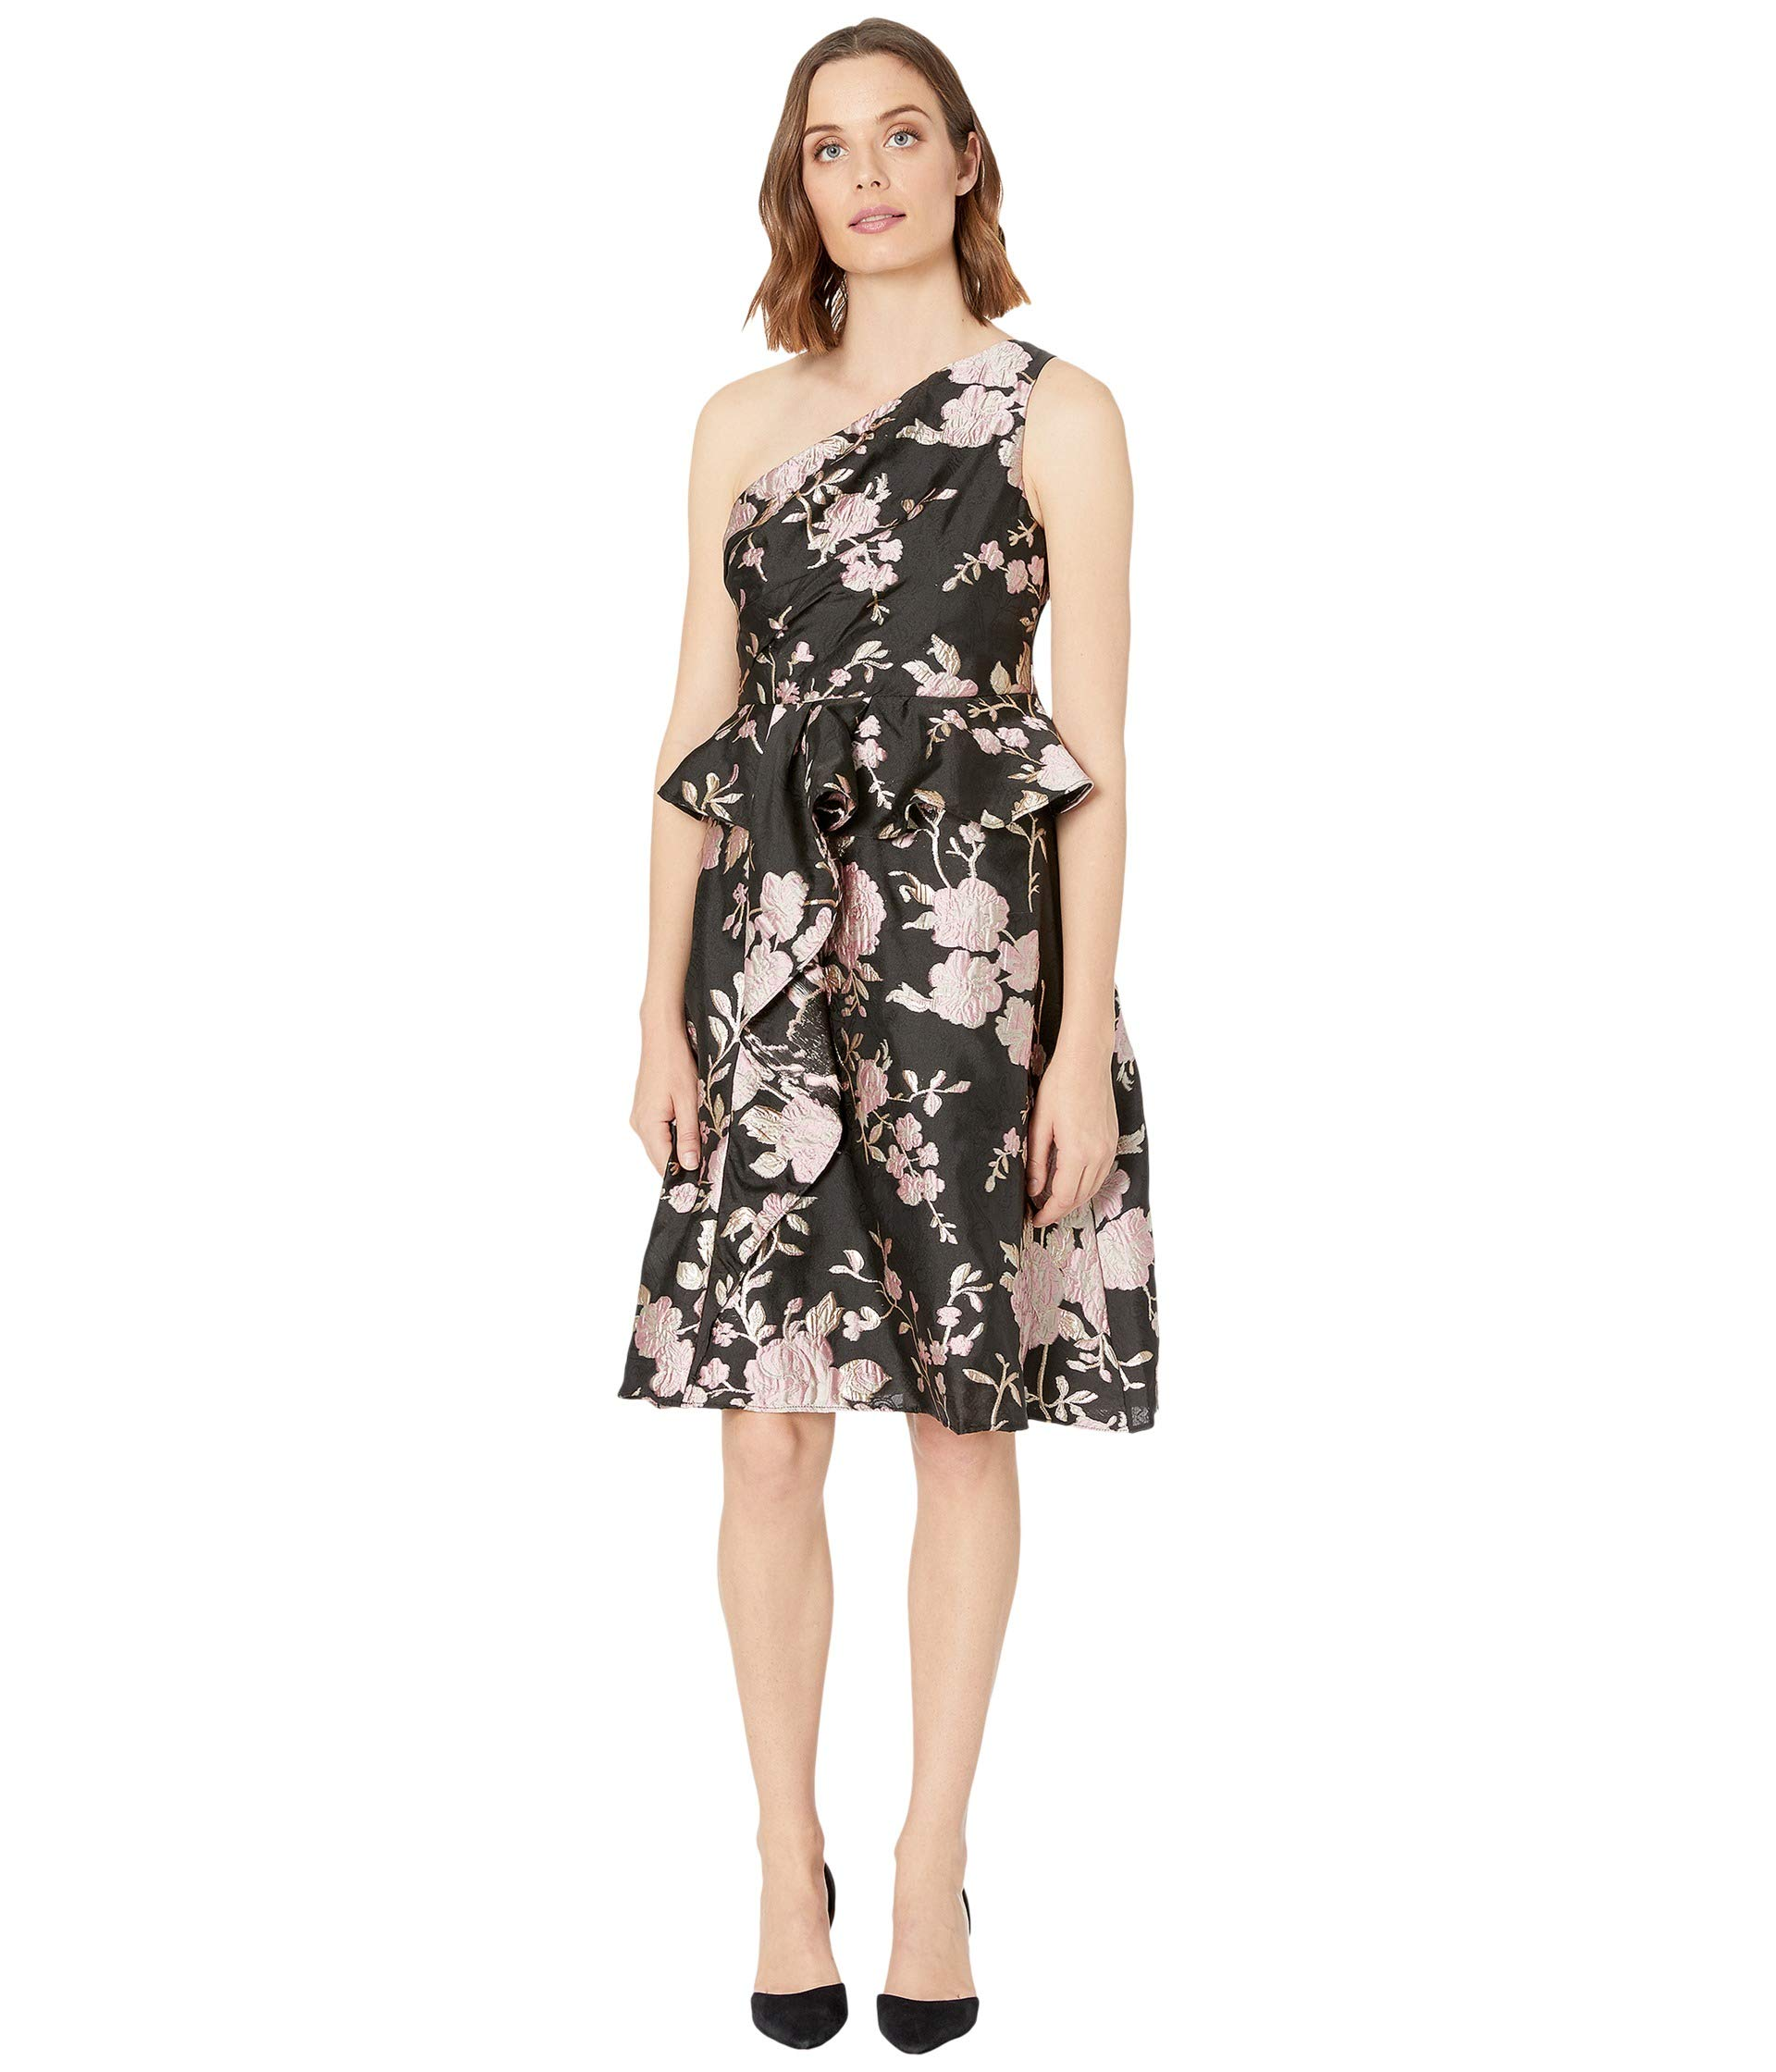 Adrianna Papell One Shoulder Floral Jacquard Cocktail Dress